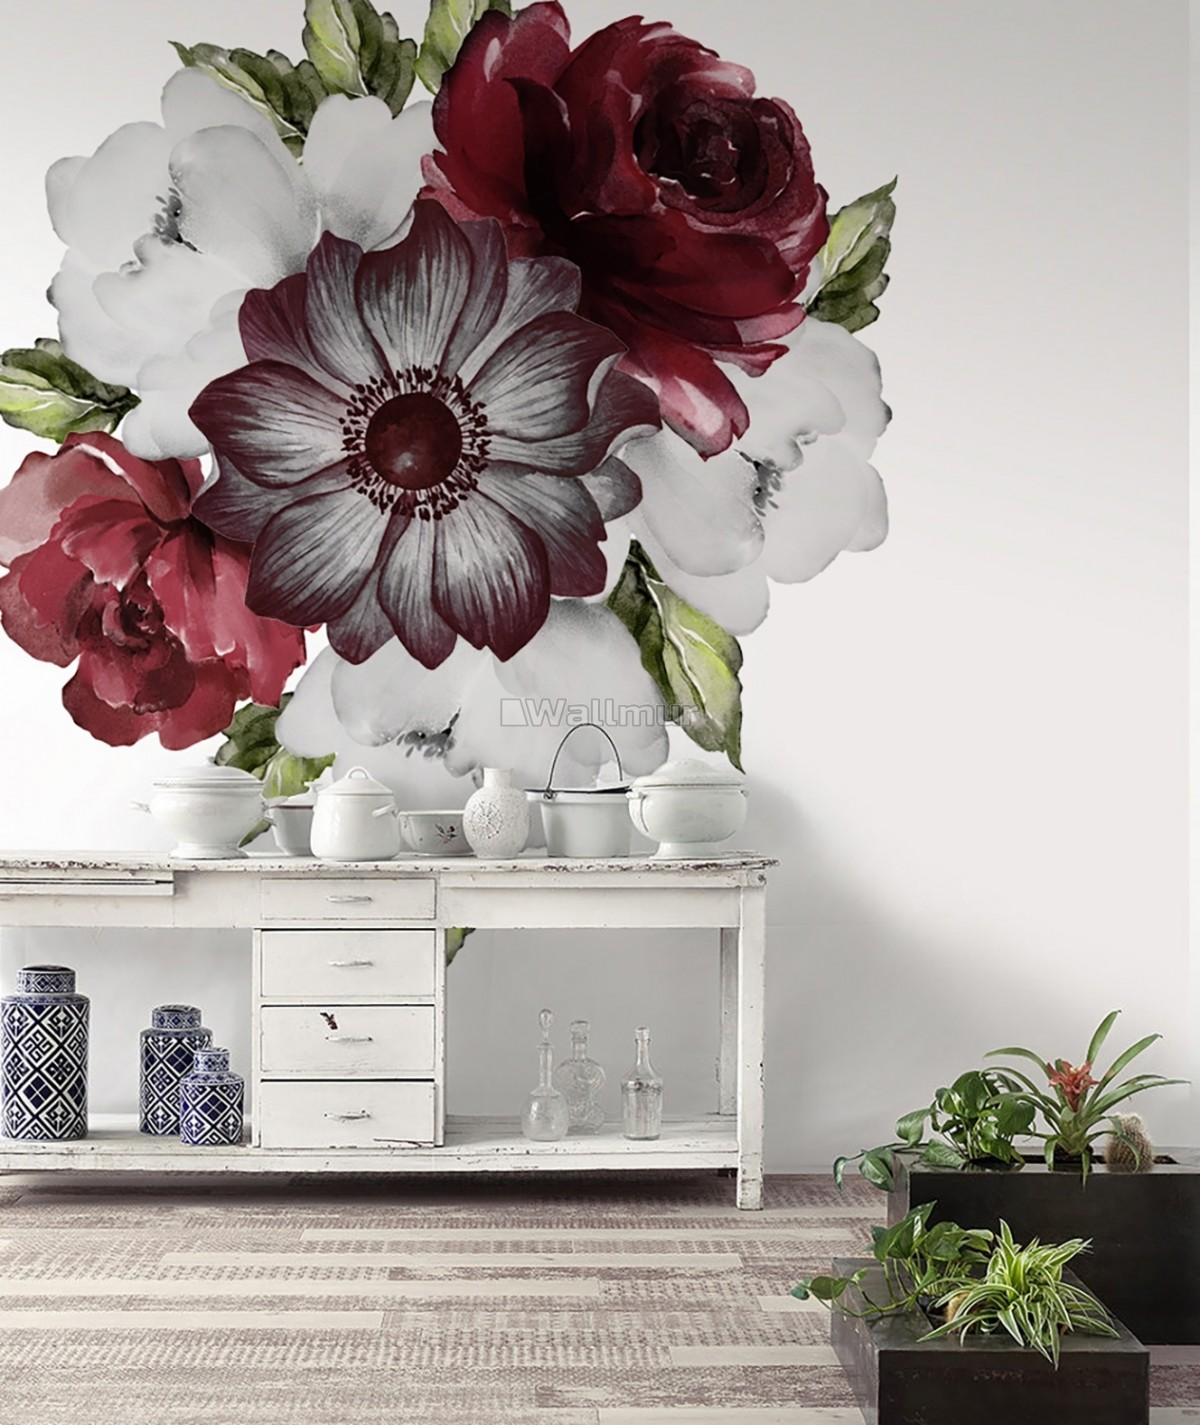 Watercolor Red Rose and Anemone Floral Bouqets Wall Decal Sticker